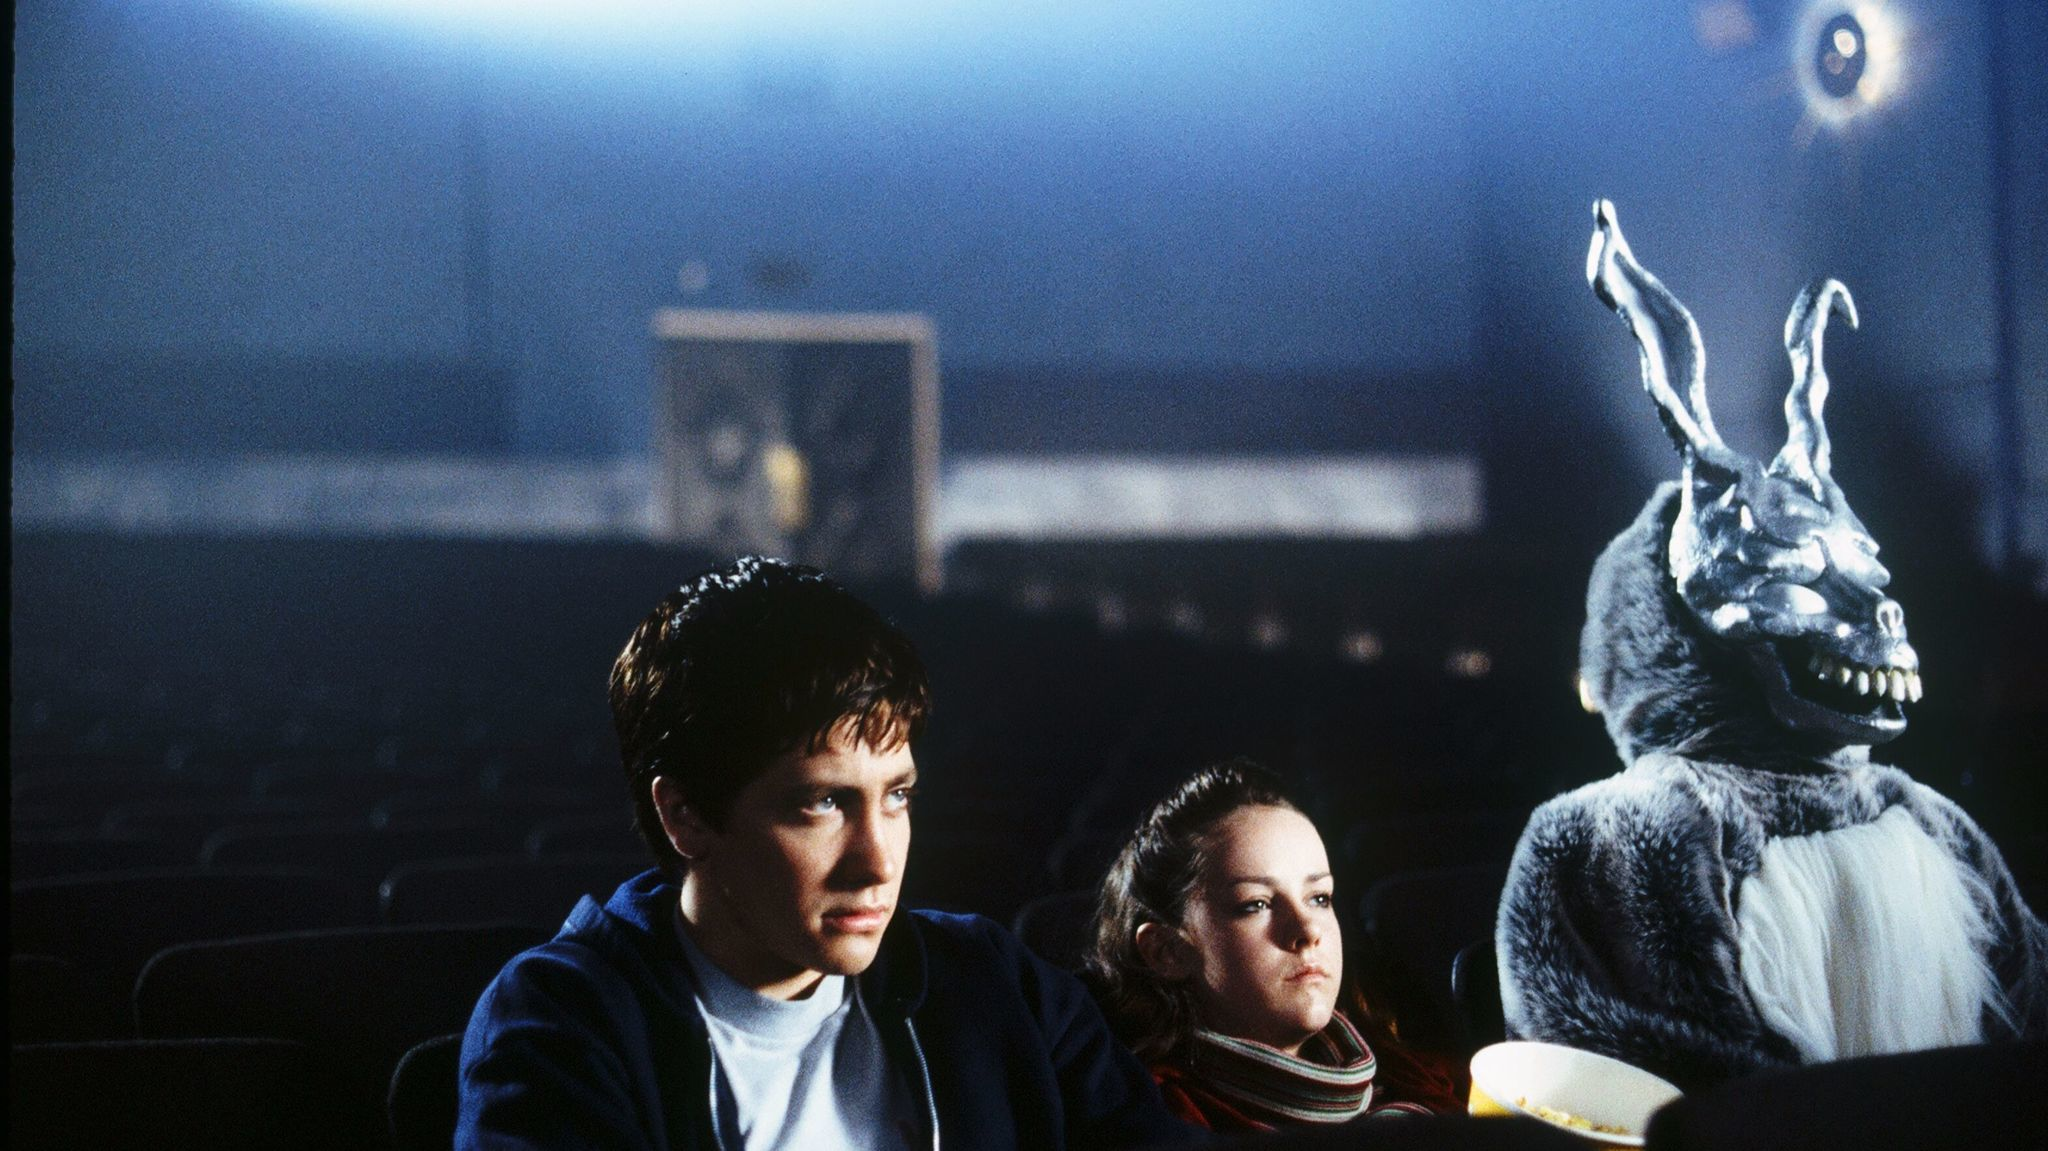 Jake Gyllenhaal as Donnie Darko, Jena Malone as Gretchen Ross and James Duval as Frank in 2001's